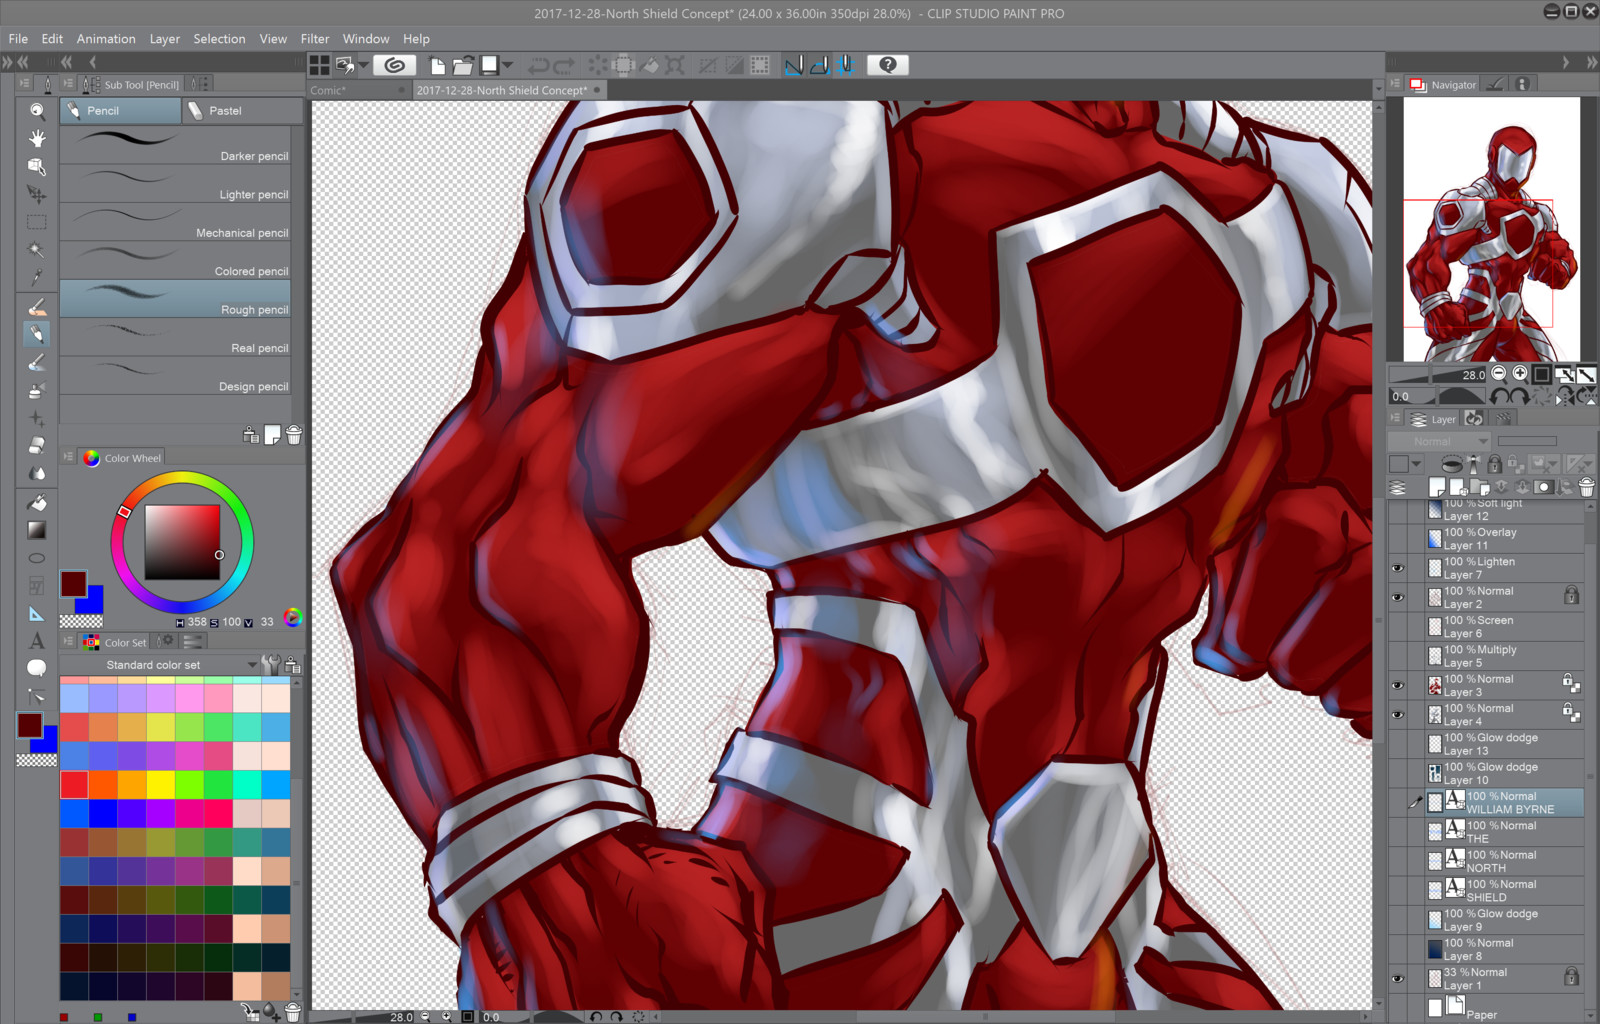 04- Painting the armor